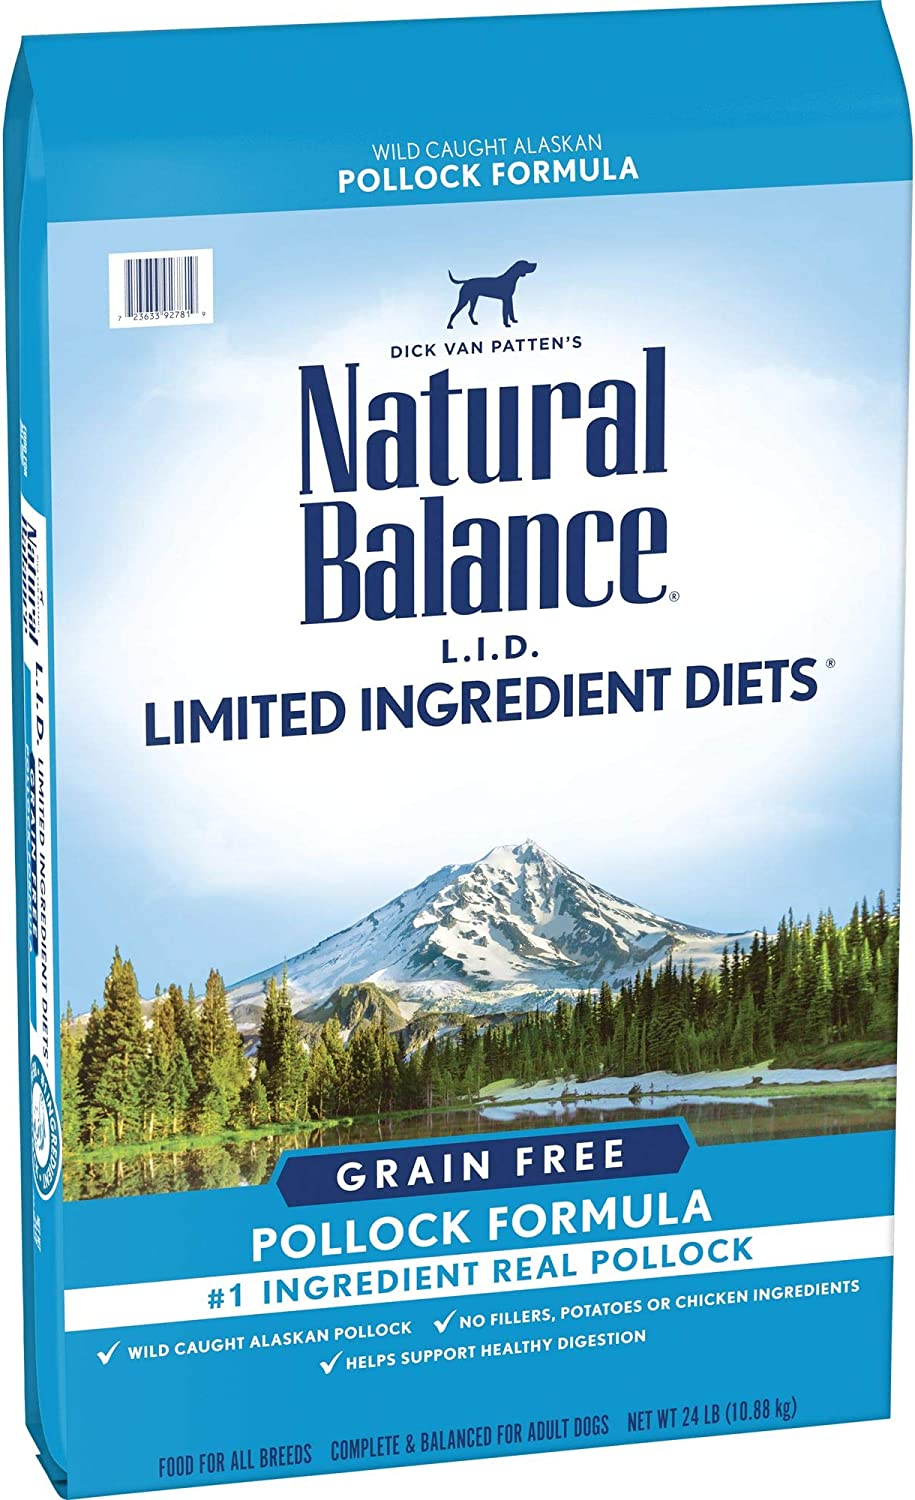 Natural Balance L.I.D. Limited Ingredient Diets High Protein Dry Dog Food, Pollock Formula, 24 Pounds, Grain Free